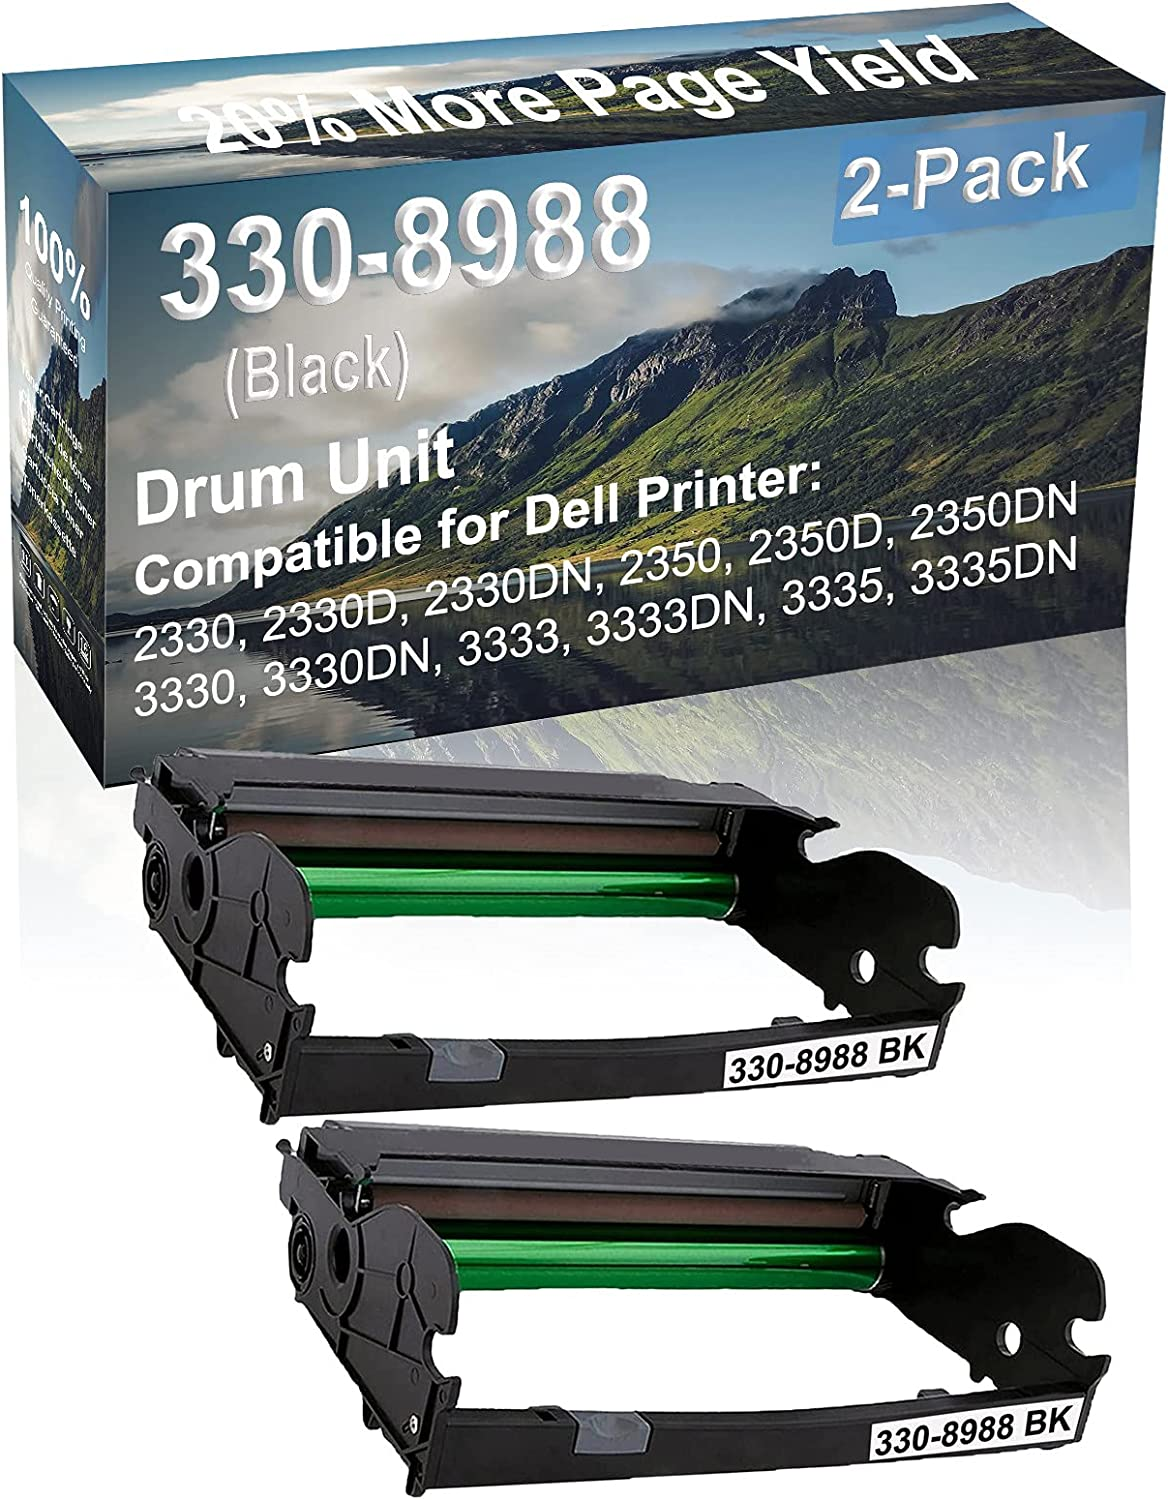 2-Pack Compatible Drum Unit (Black) Replacement for Dell 330-8988 Drum Kit use for Dell 3333, 3333DN, 3335, 3335DN Printer